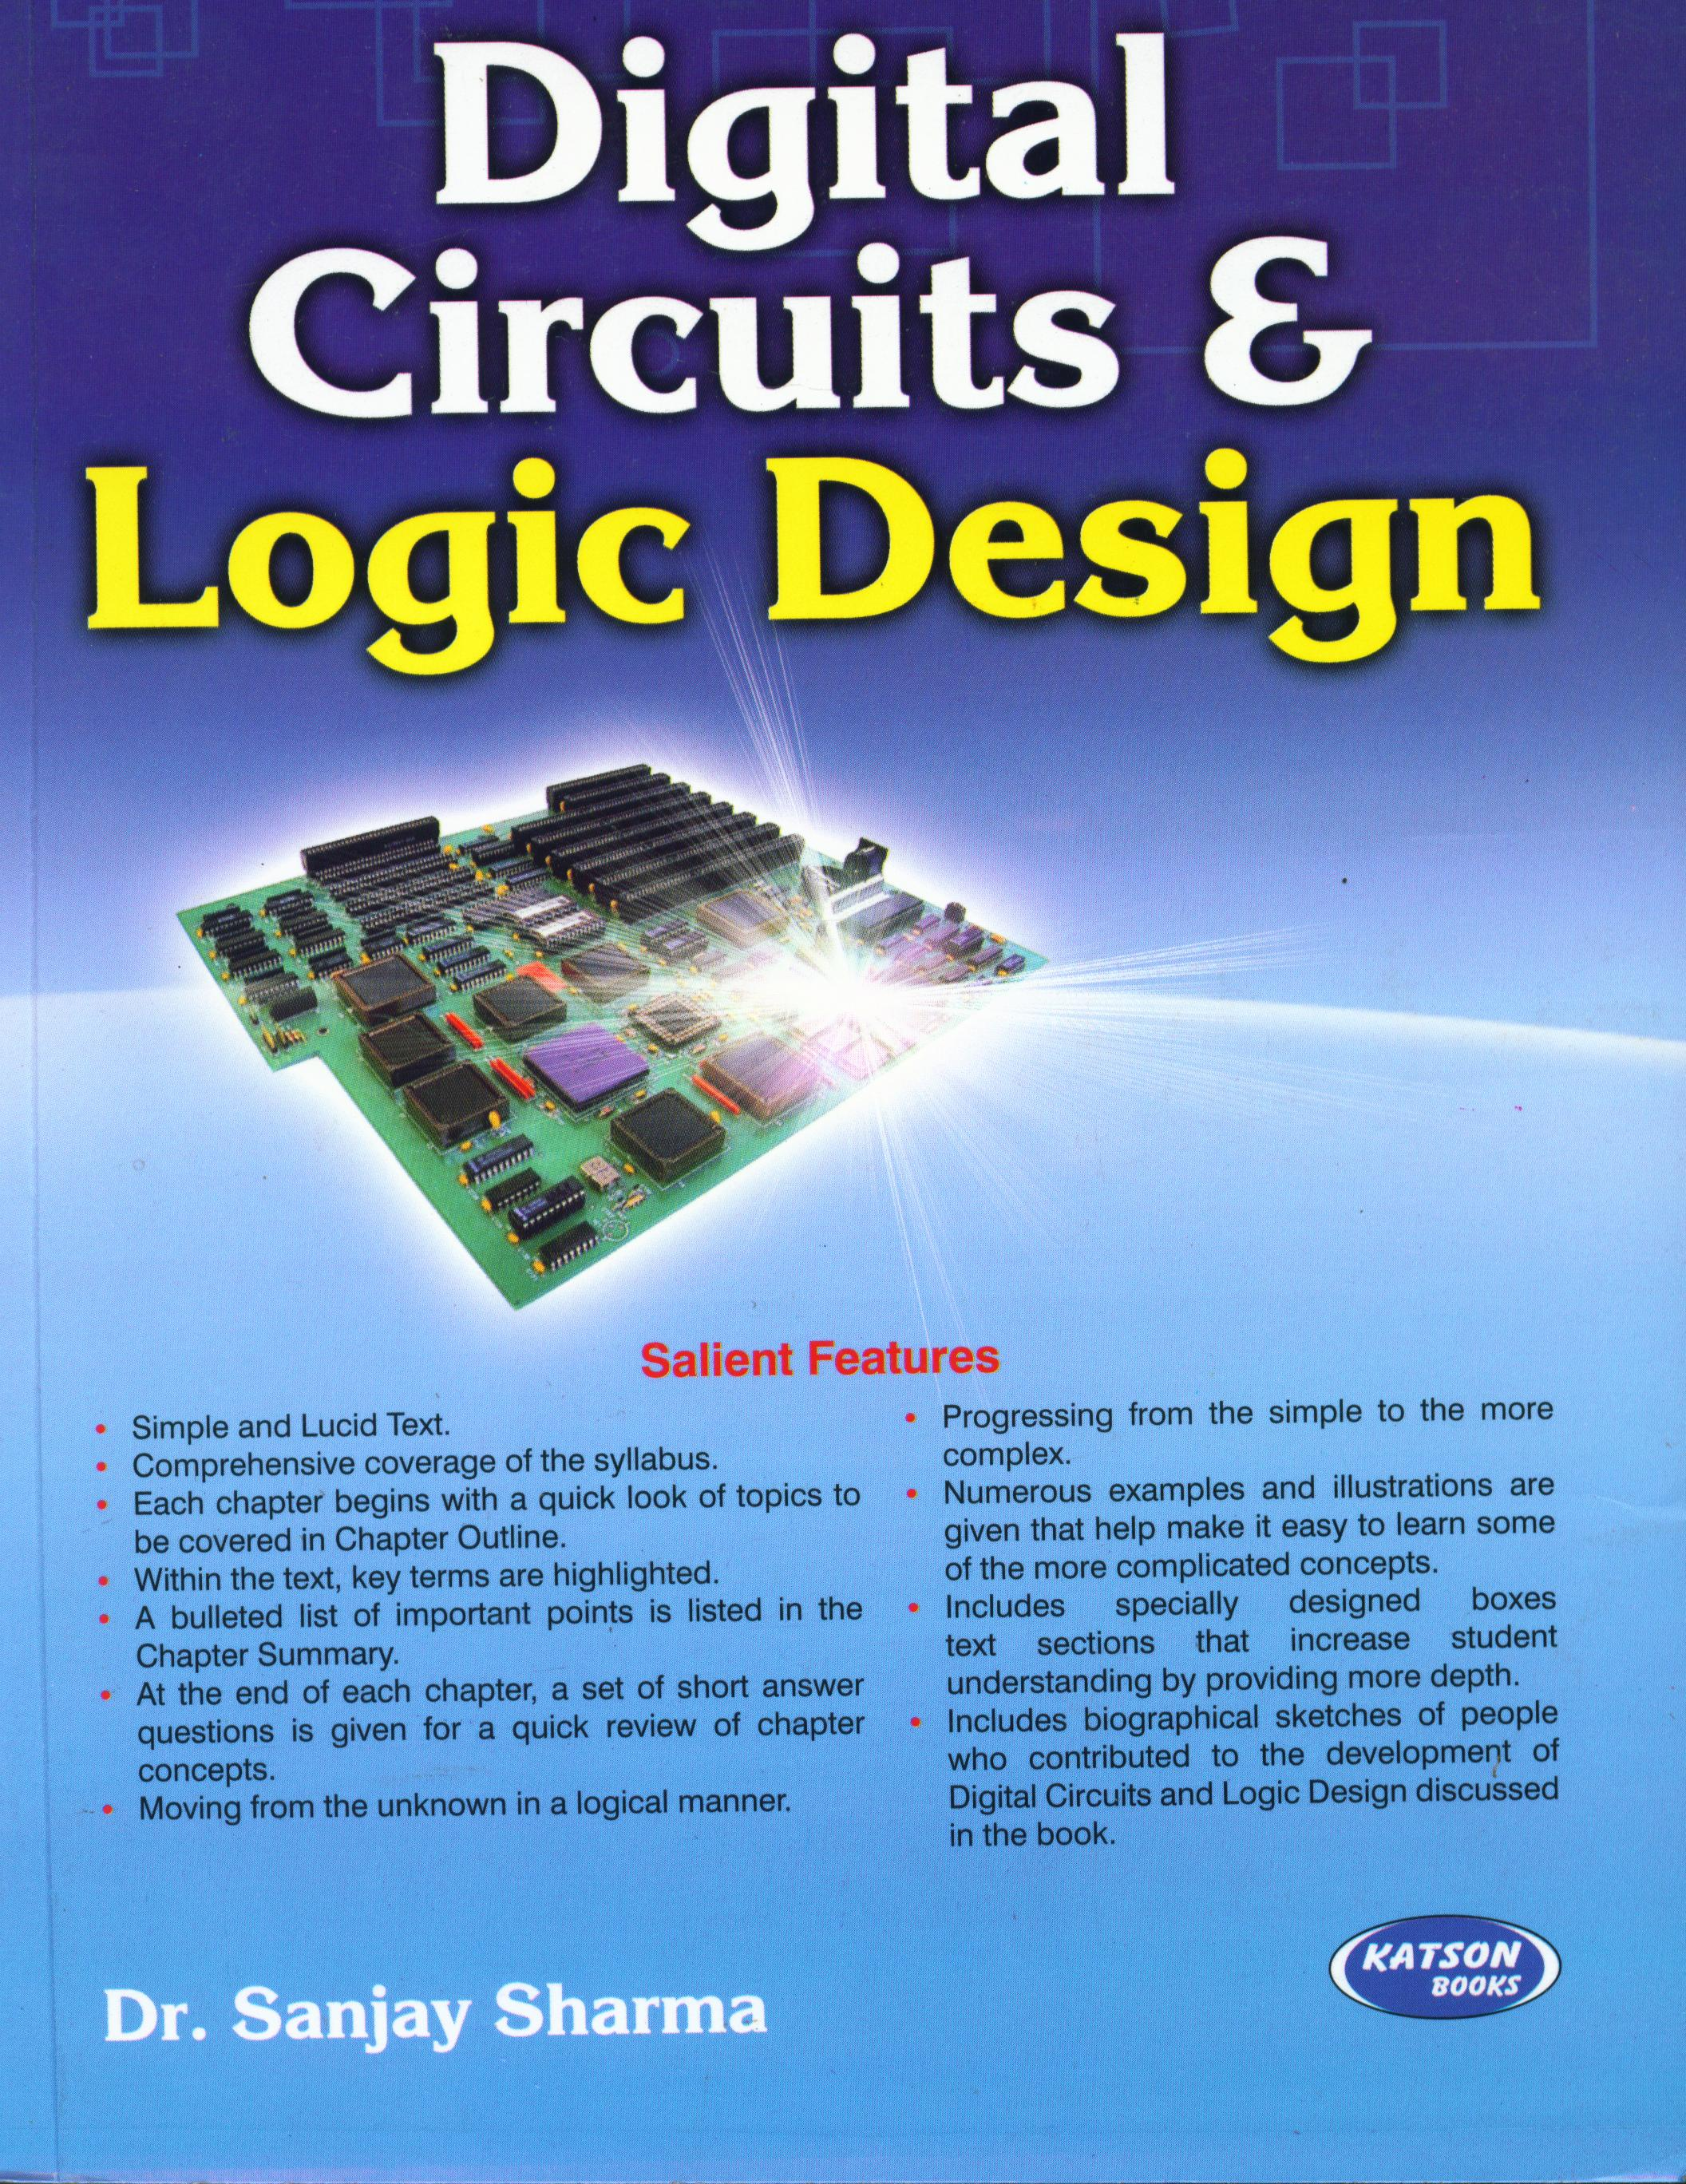 Electronics design books clip art royalty free library S.K. KATARIA & SONS, Publisher of Engineering Books in India clip art royalty free library